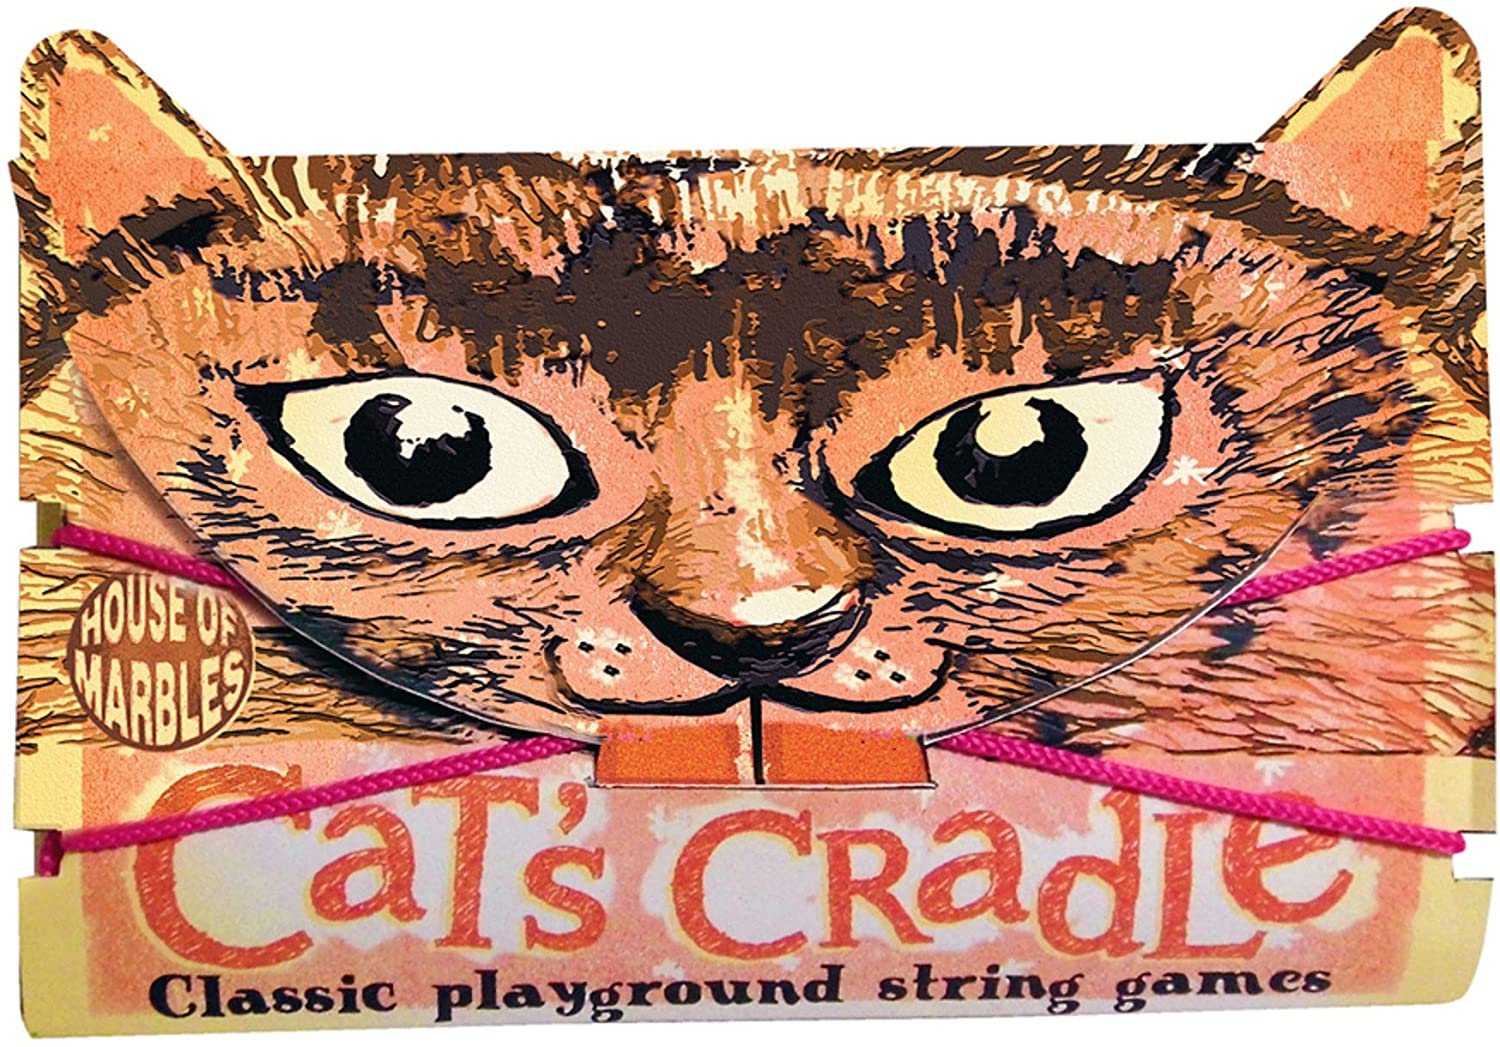 House of Marbles Cat's Cradle Classic Playground String Game